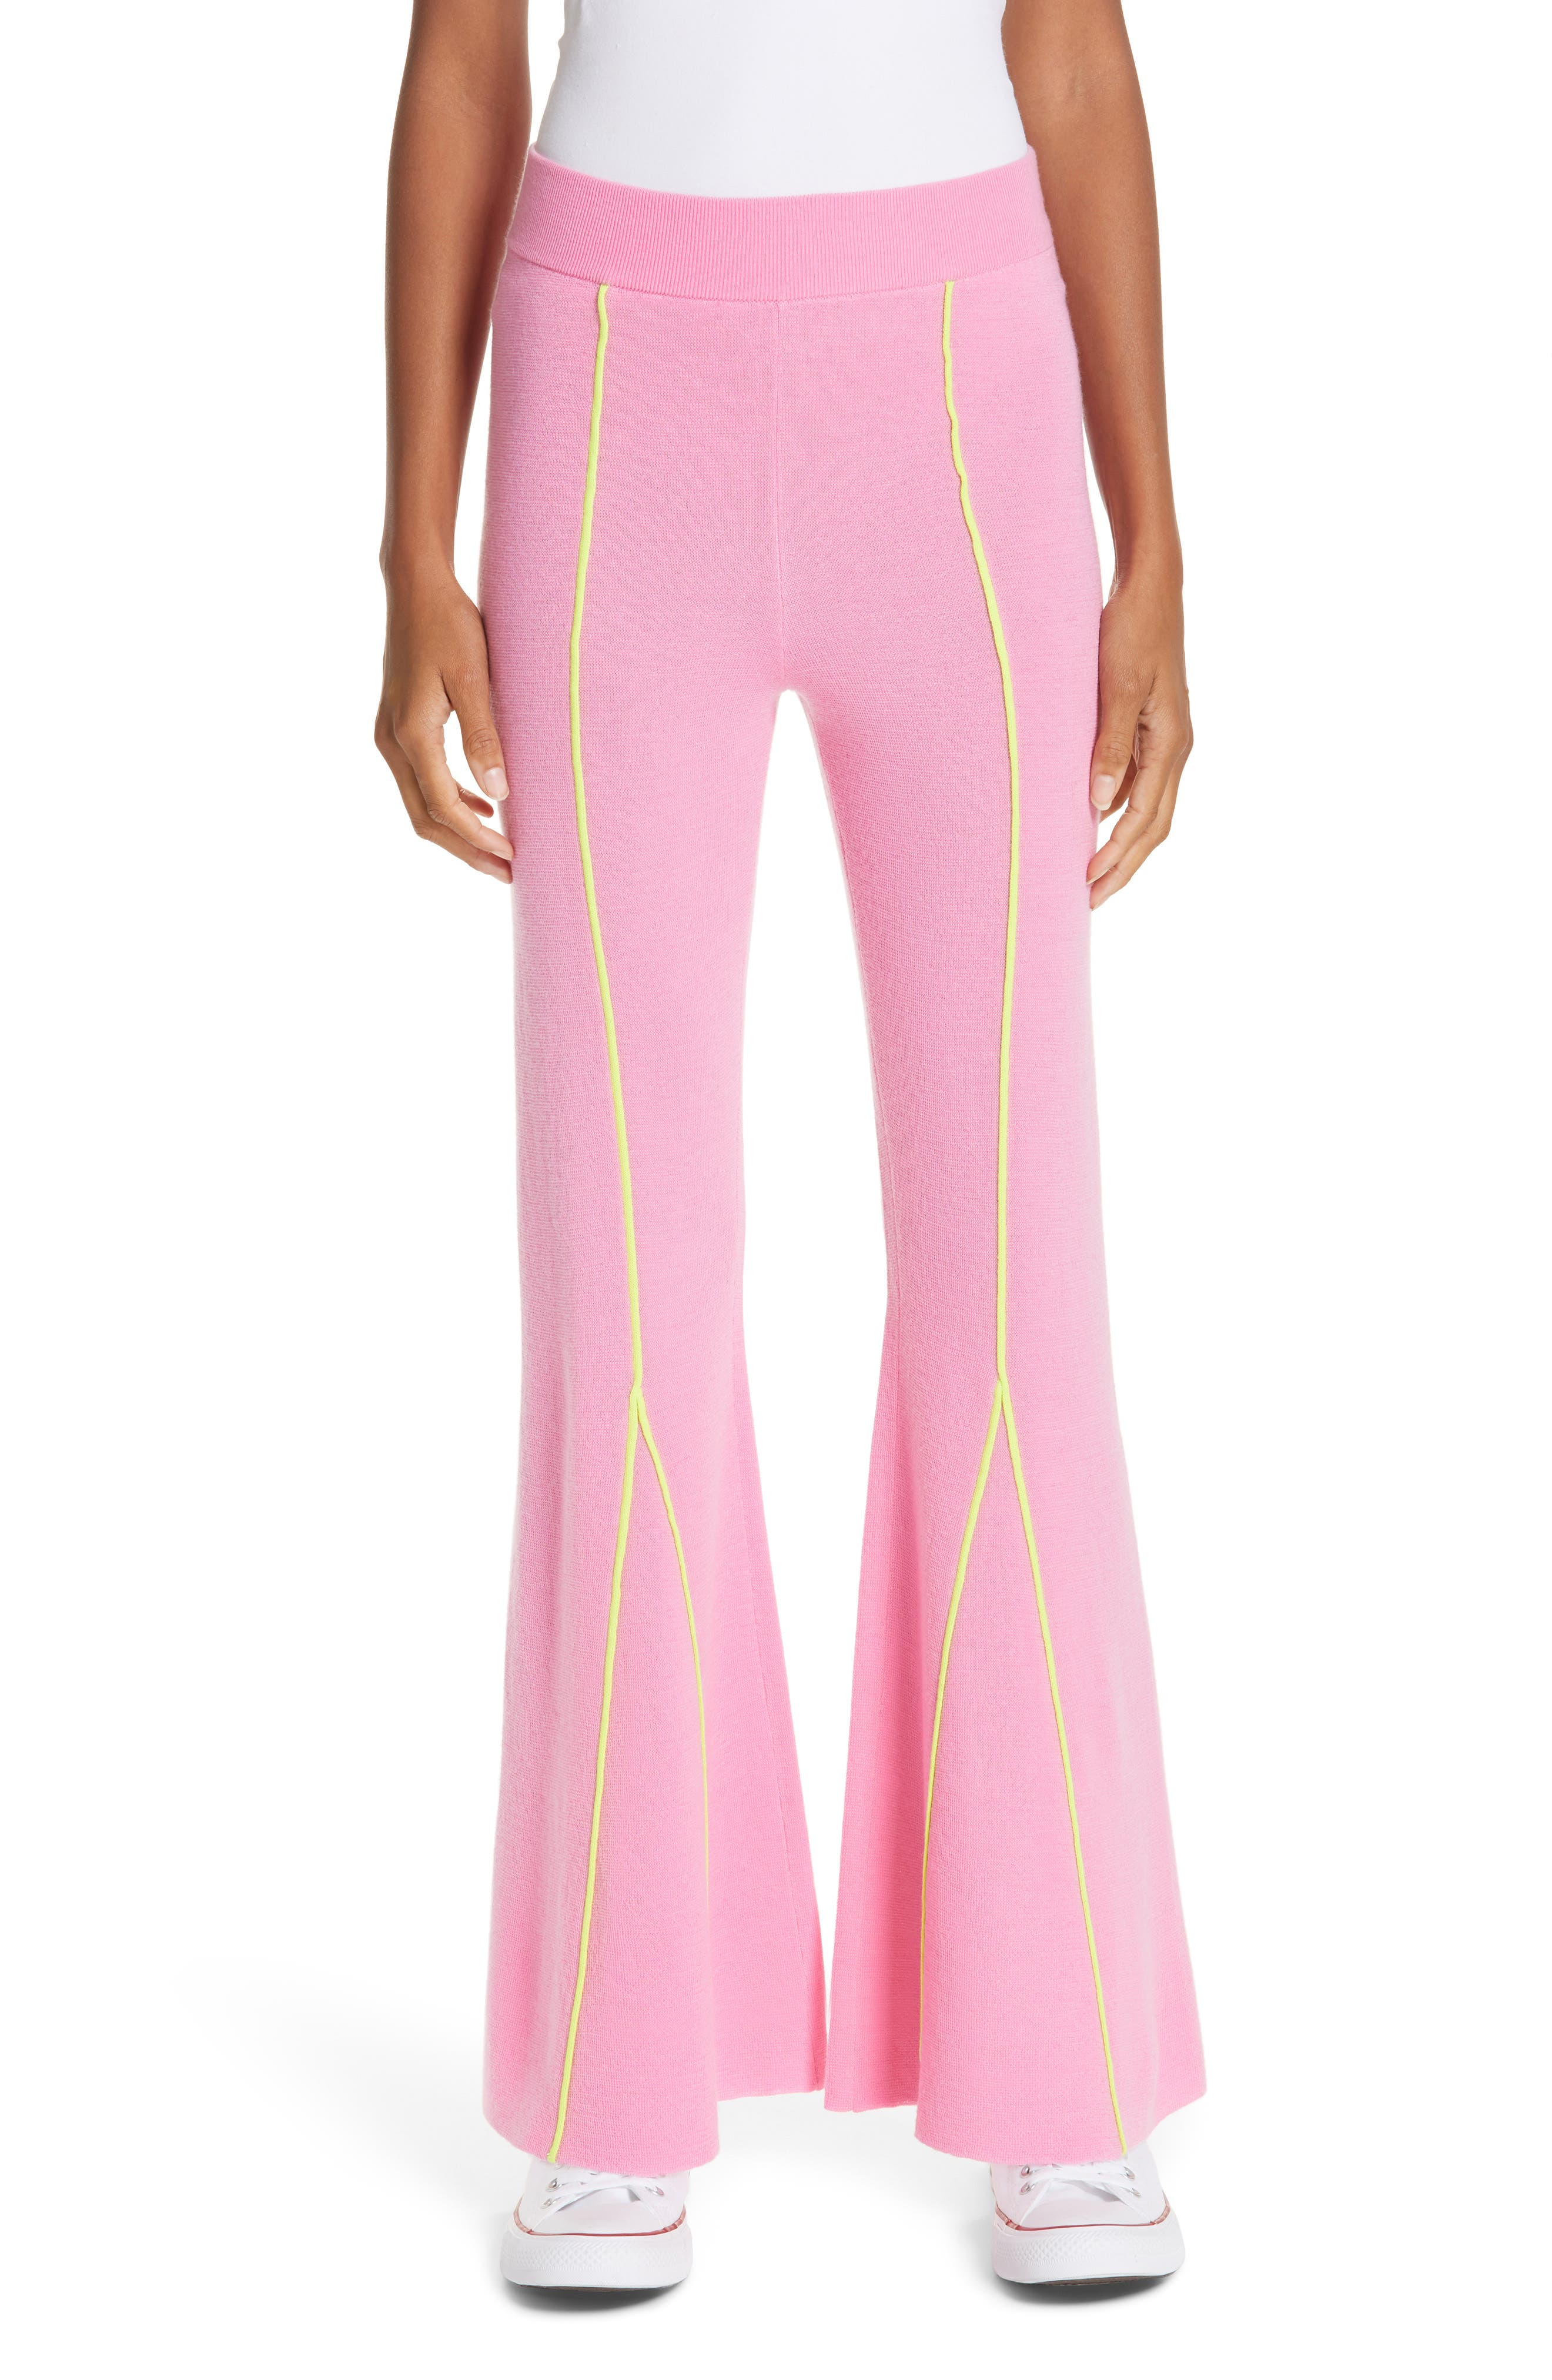 VICTOR GLEMAUD Knitted Flare Wool Pants in Pink